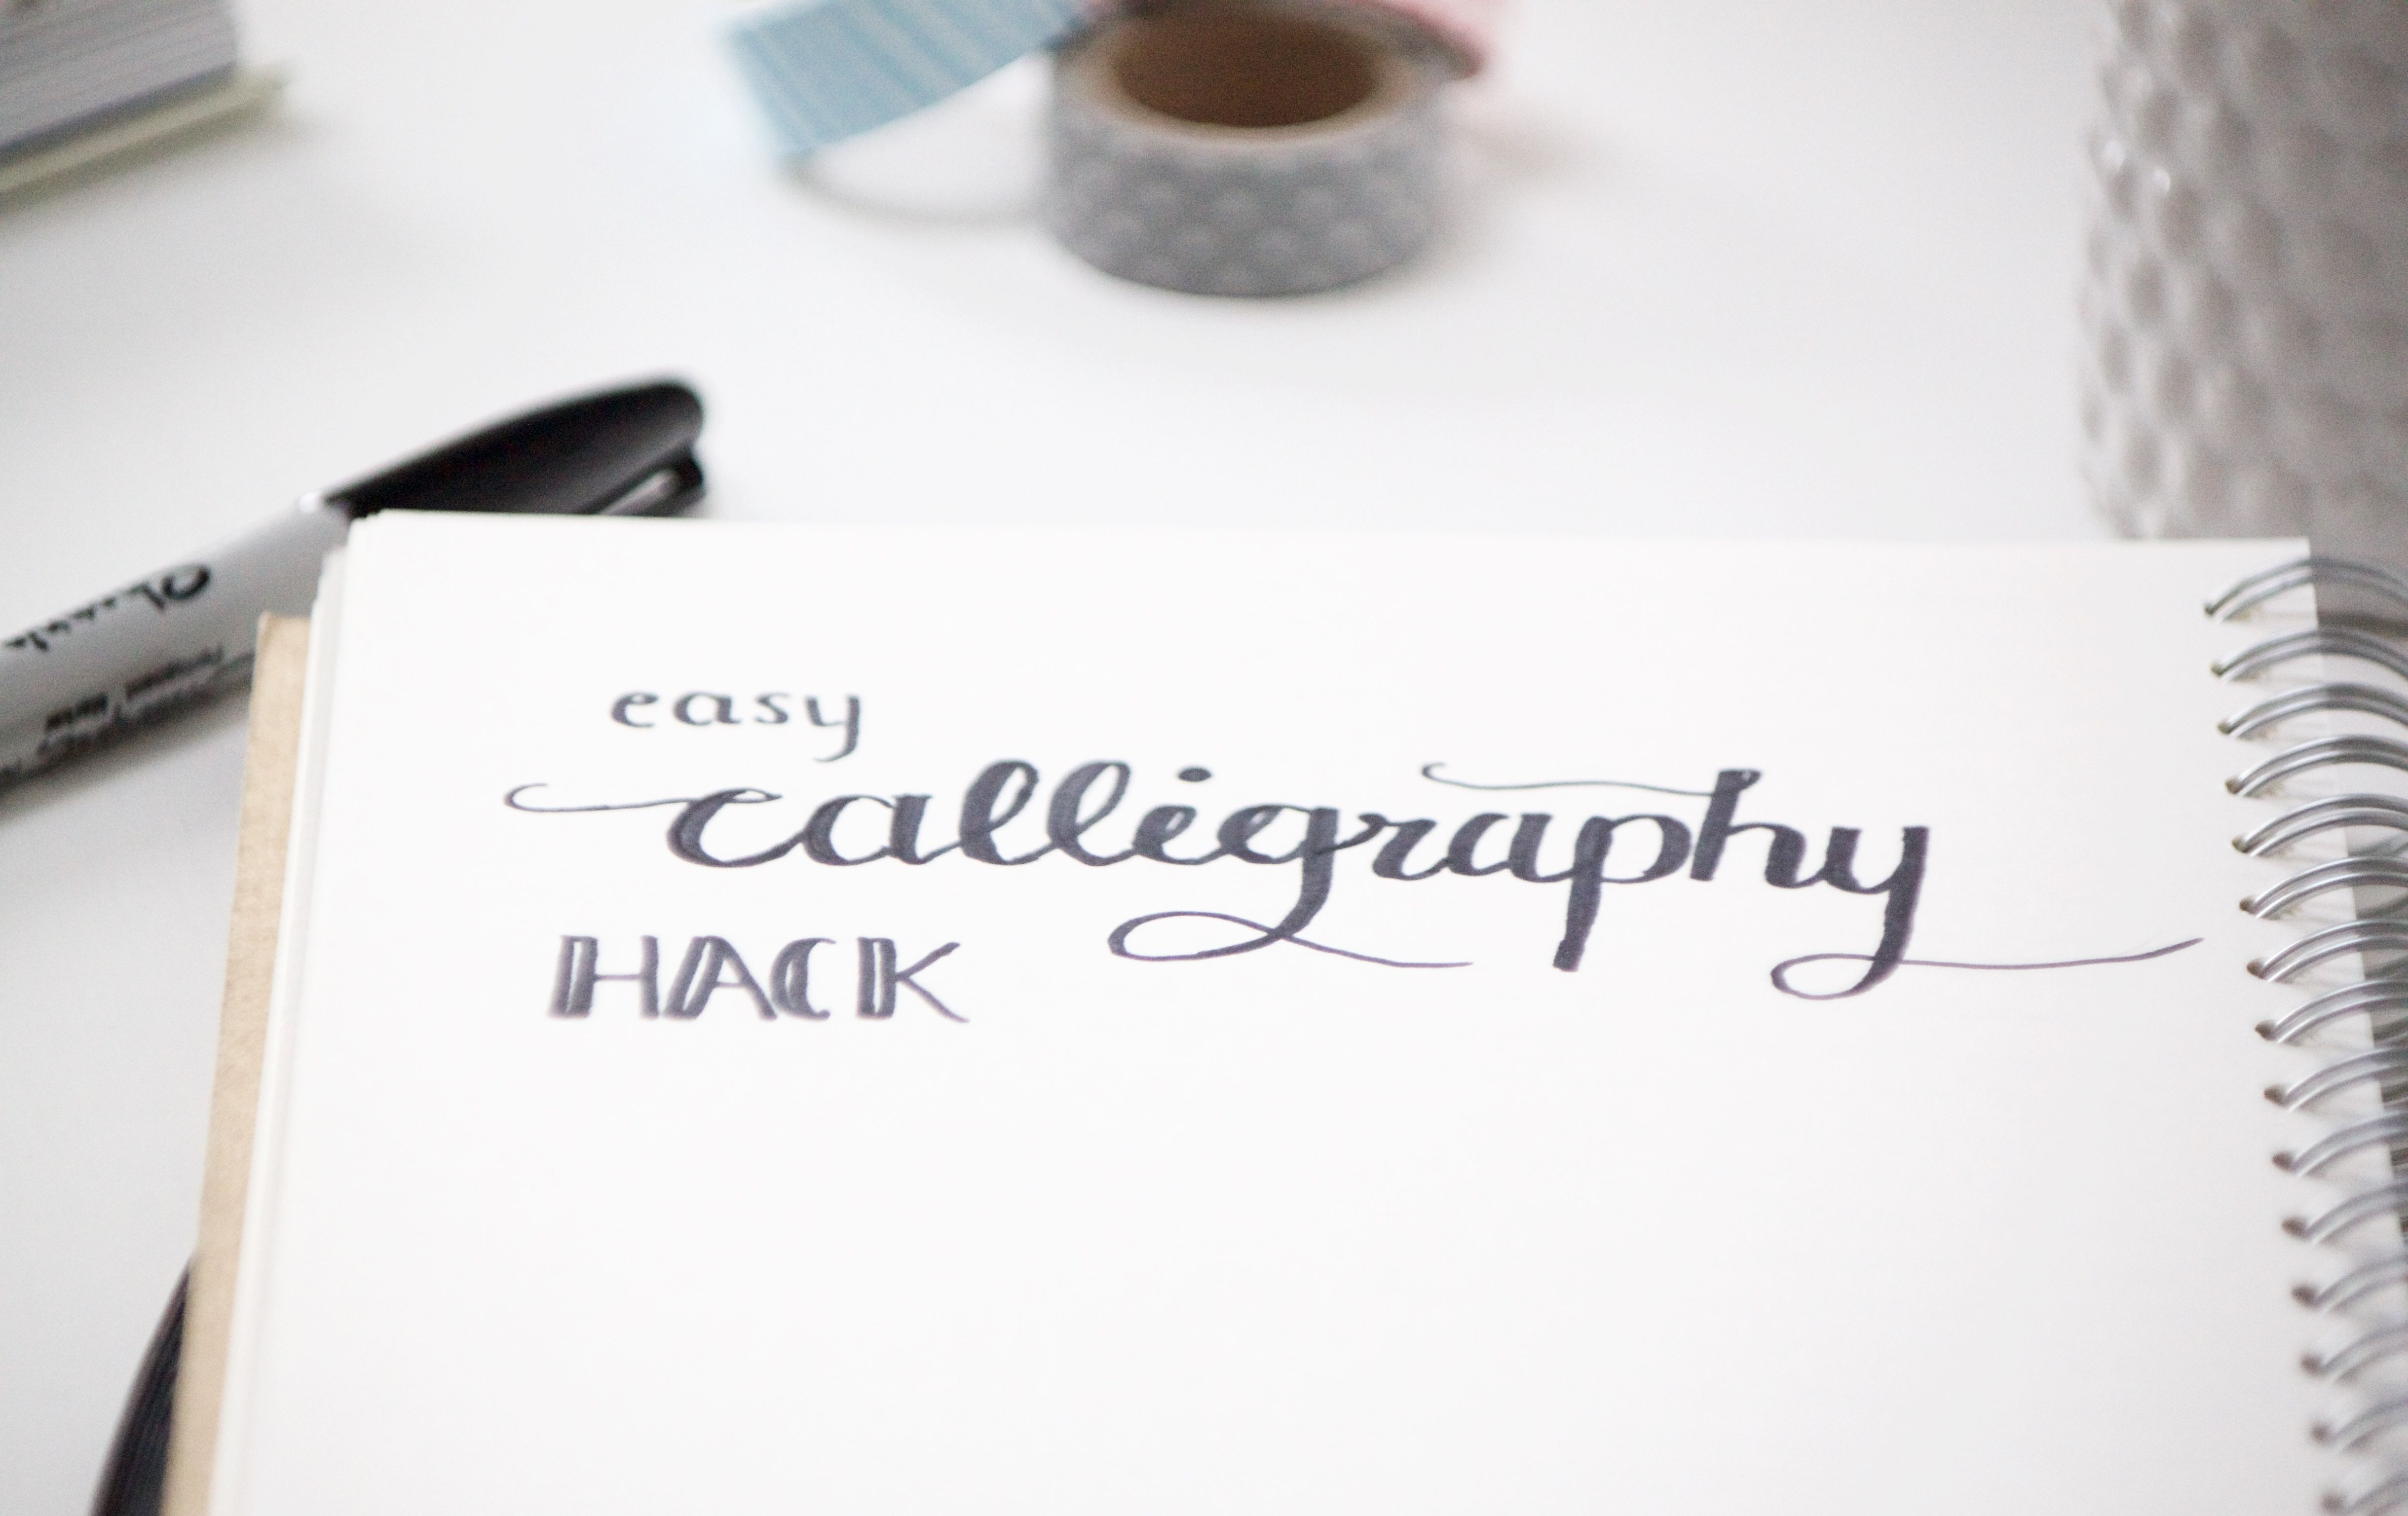 Easy calligraphy hack calligraphy bullet and bullet journals